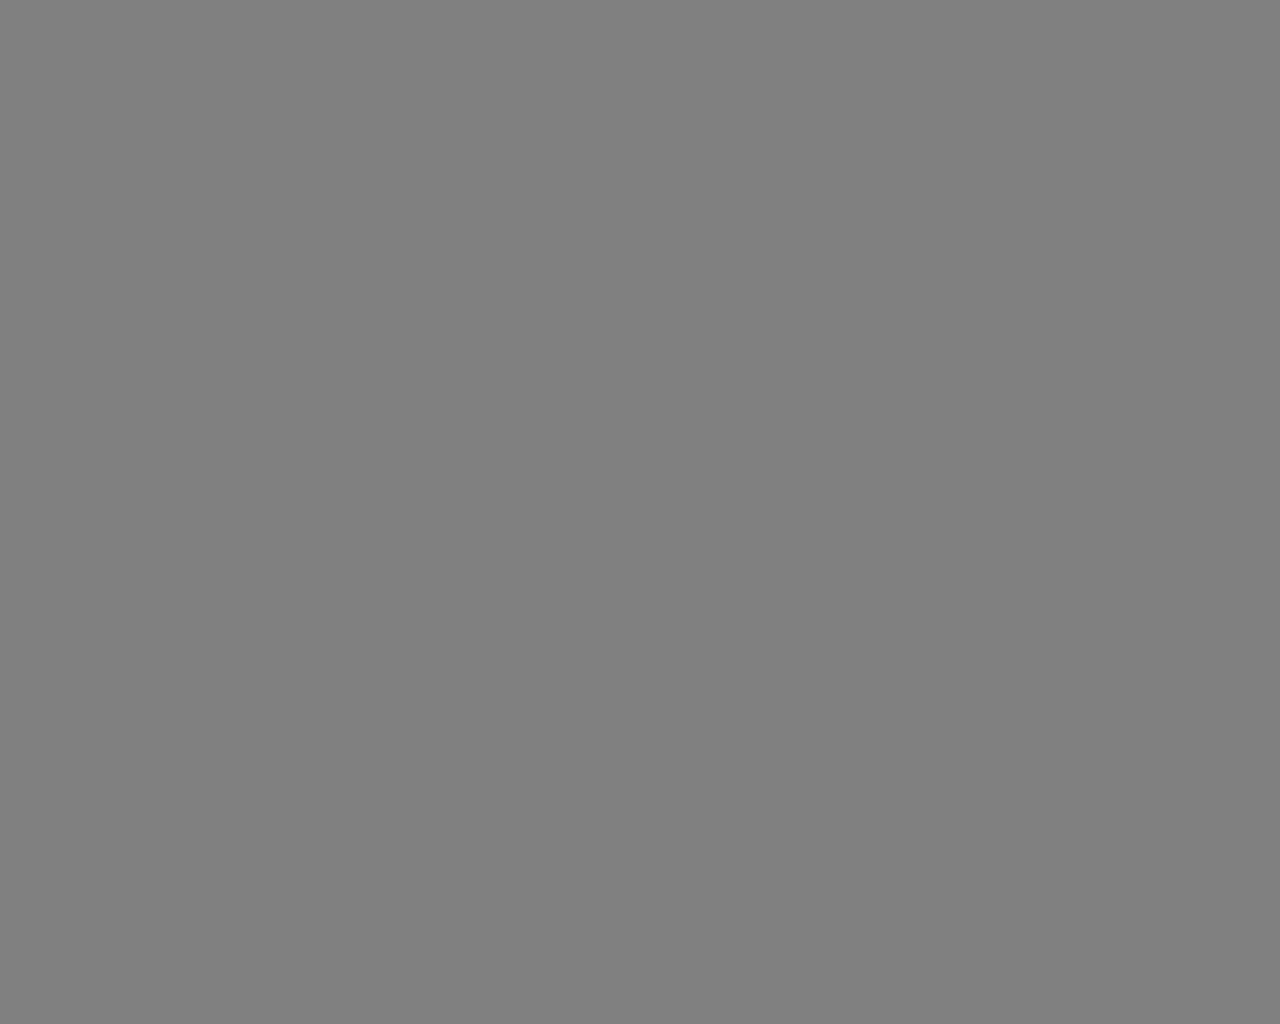 1280x1024 Gray Solid Color Background